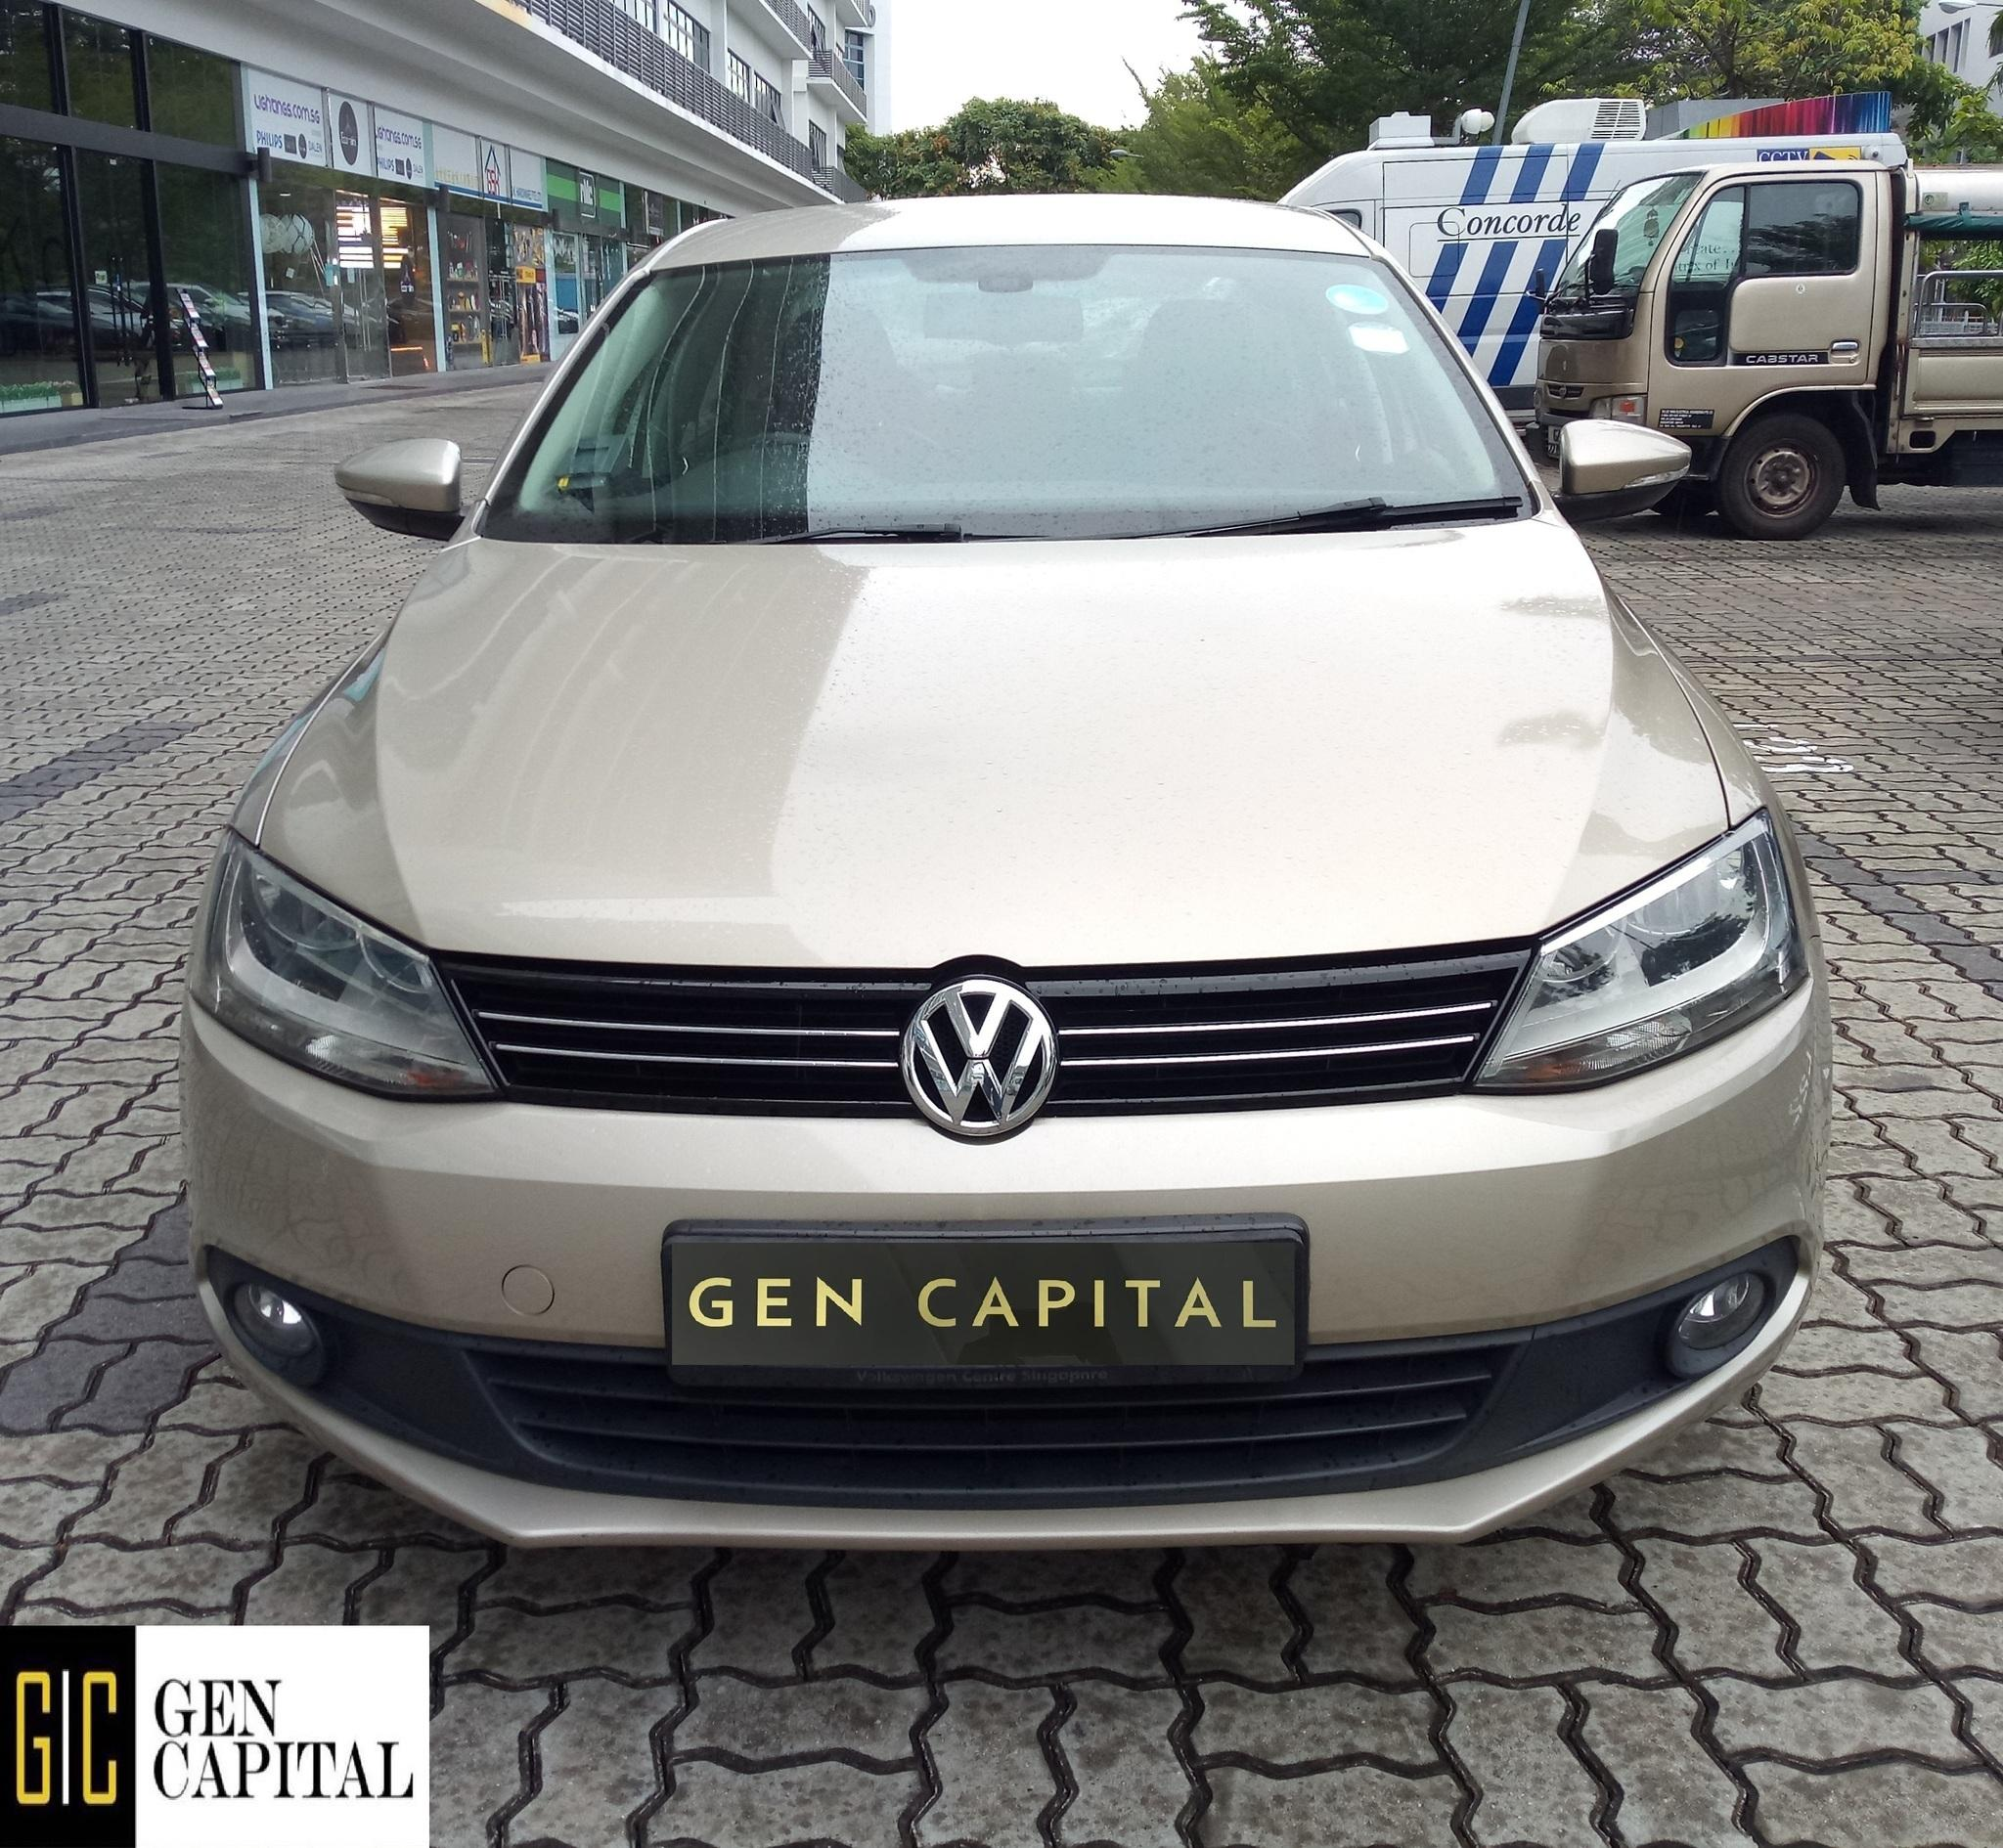 Volkswagen Jetta 1.4 TSI 2013 Superb Condition Car for Rental